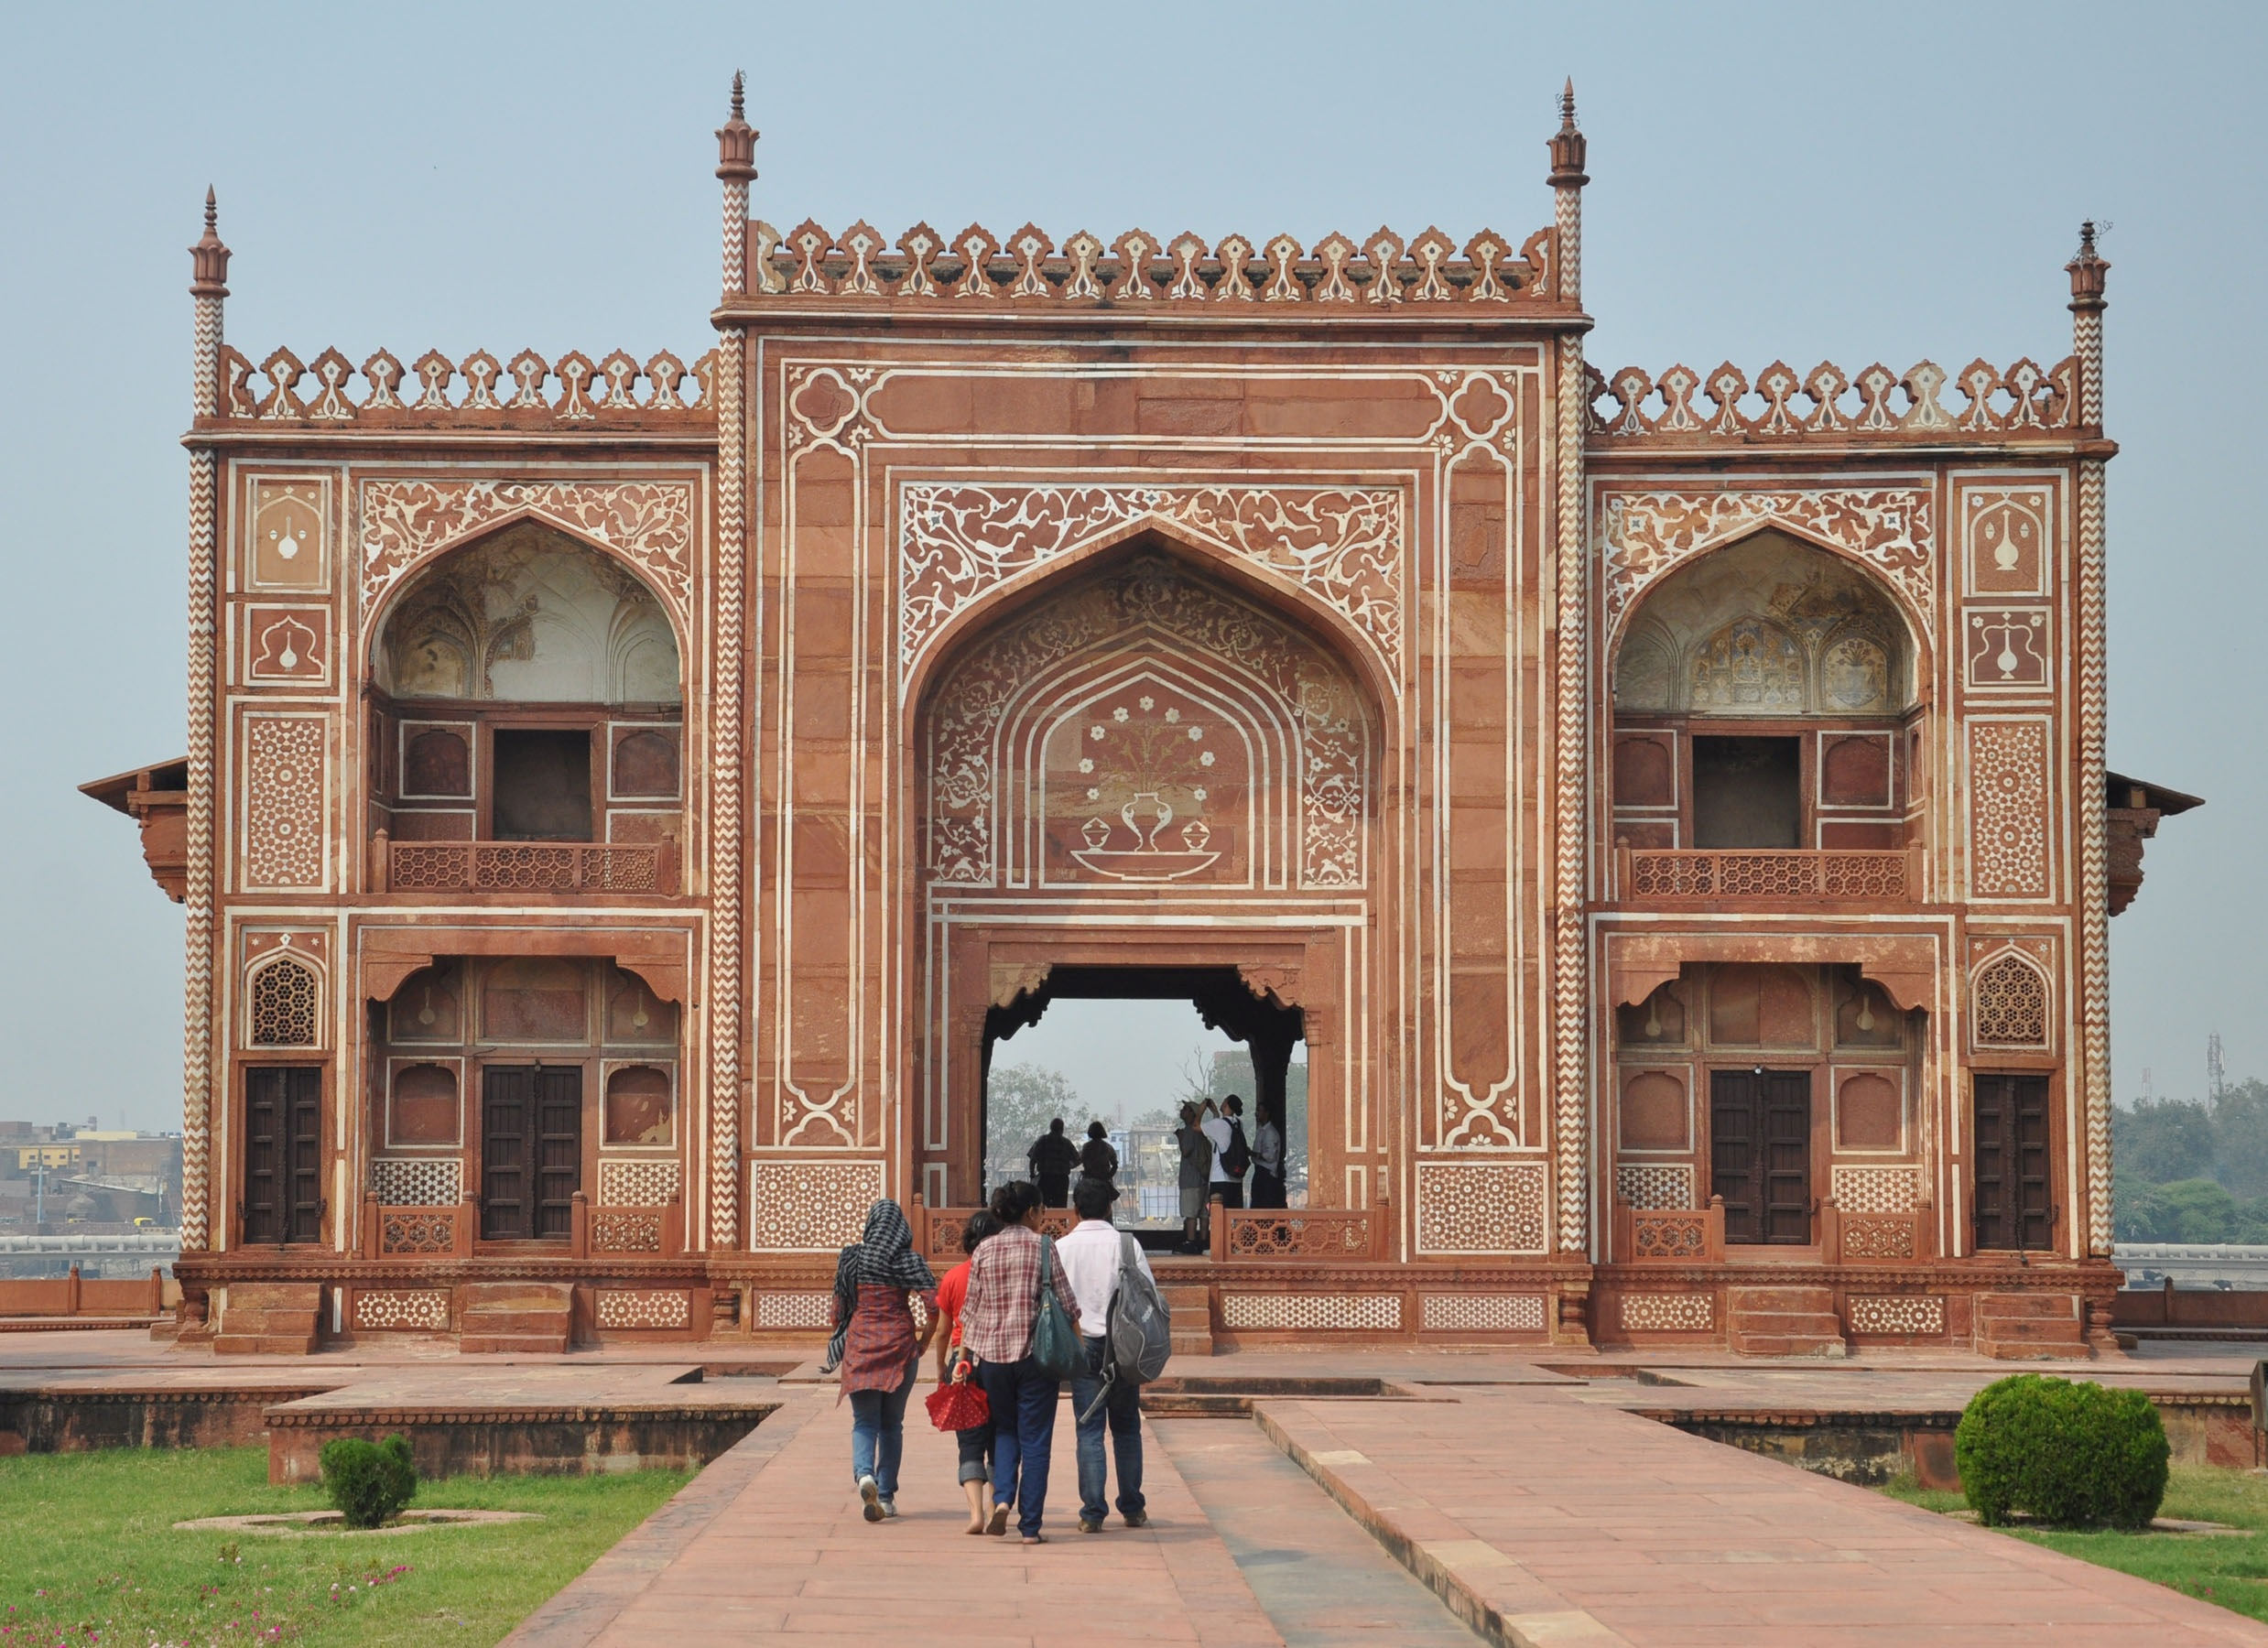 Pleasure pavilion by the riverside, Tomb of Itimad-ud-Daulah, Agra